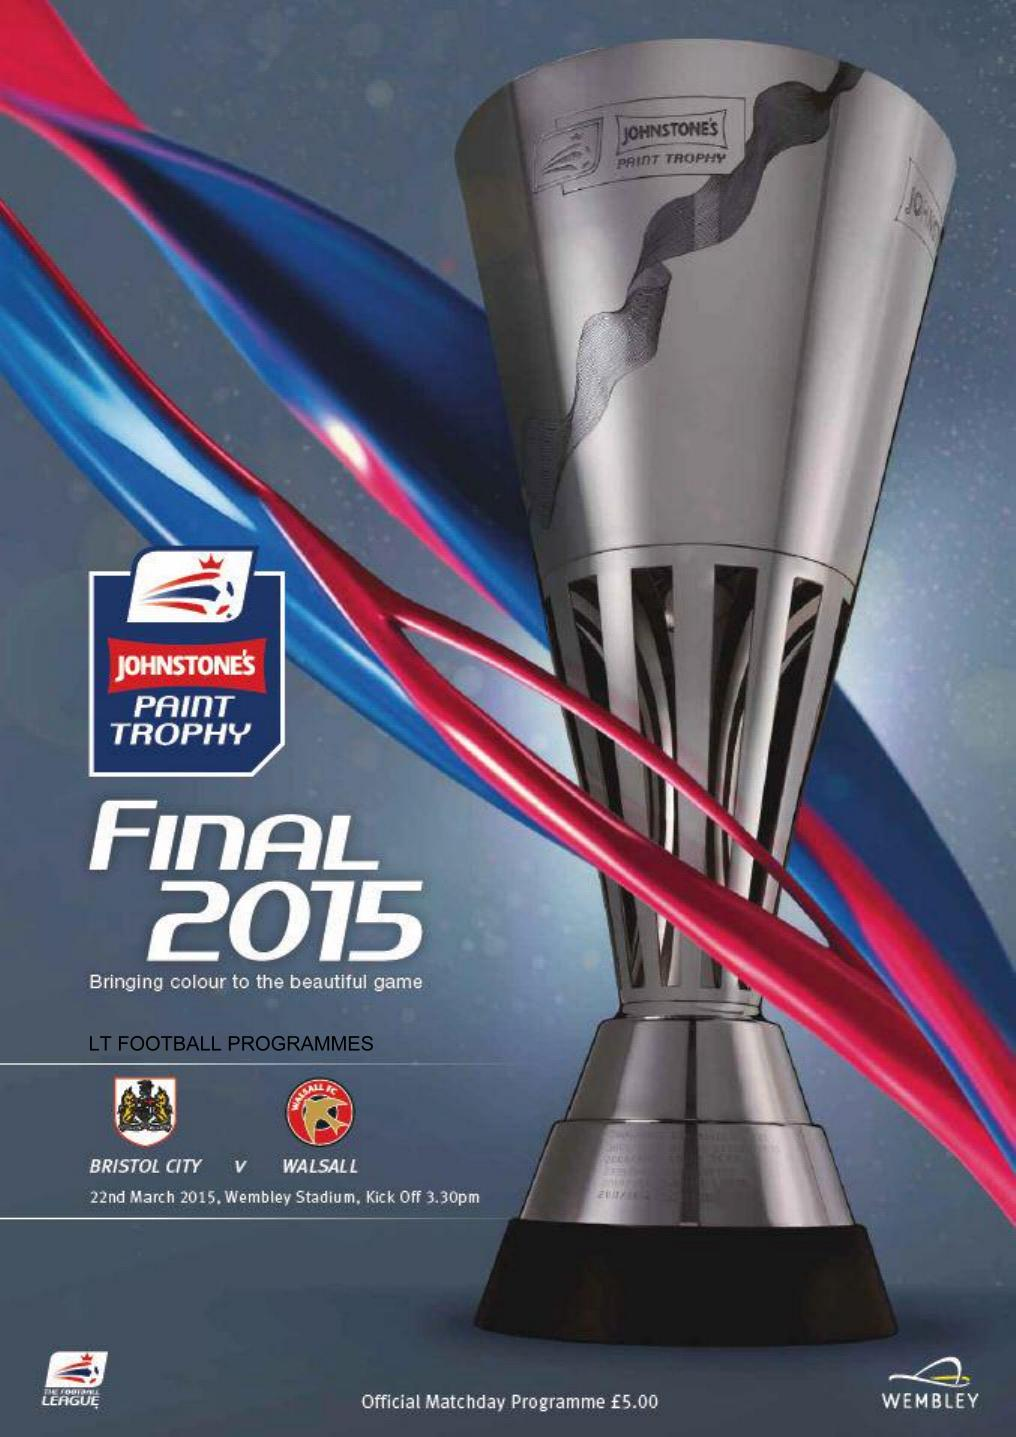 2015 JP TROPHY FINAL - BRISTOL CITY v WALSALL